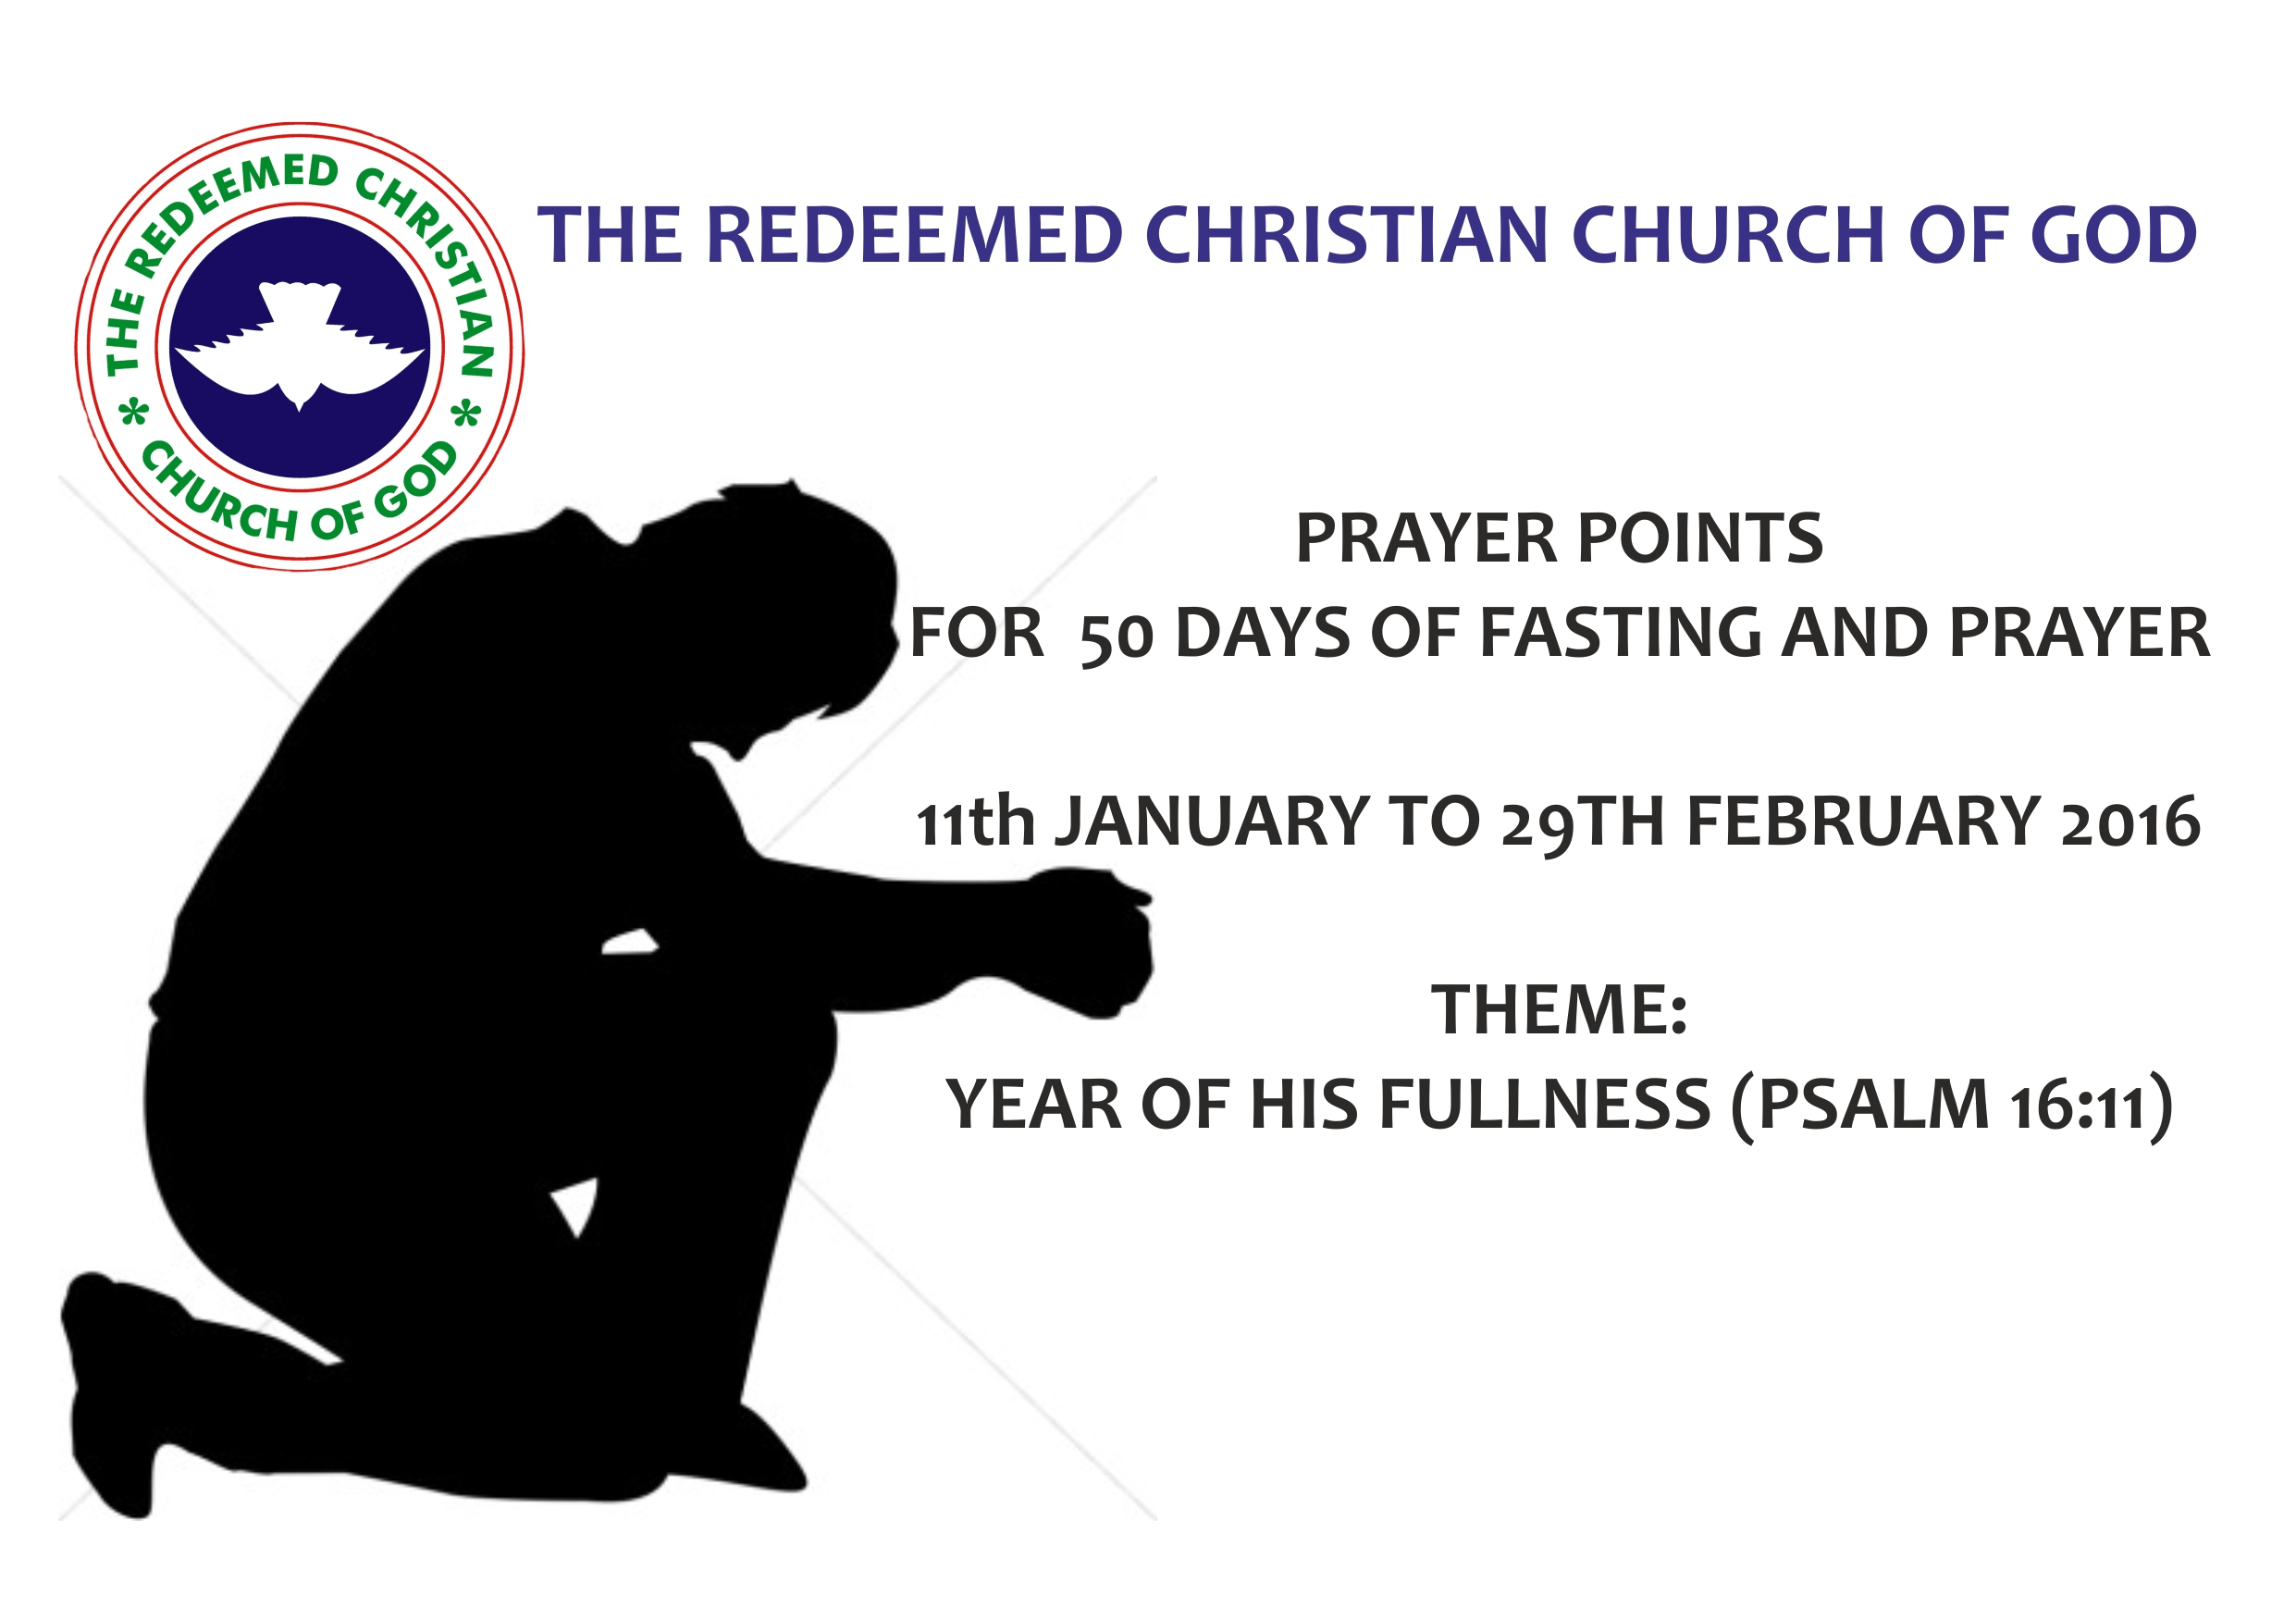 THE RCCG PRAYER POINTS FOR  50 DAYS OF FASTING AND PRAYER – 11th JANUARY TO 29TH FEBRUARY 2016